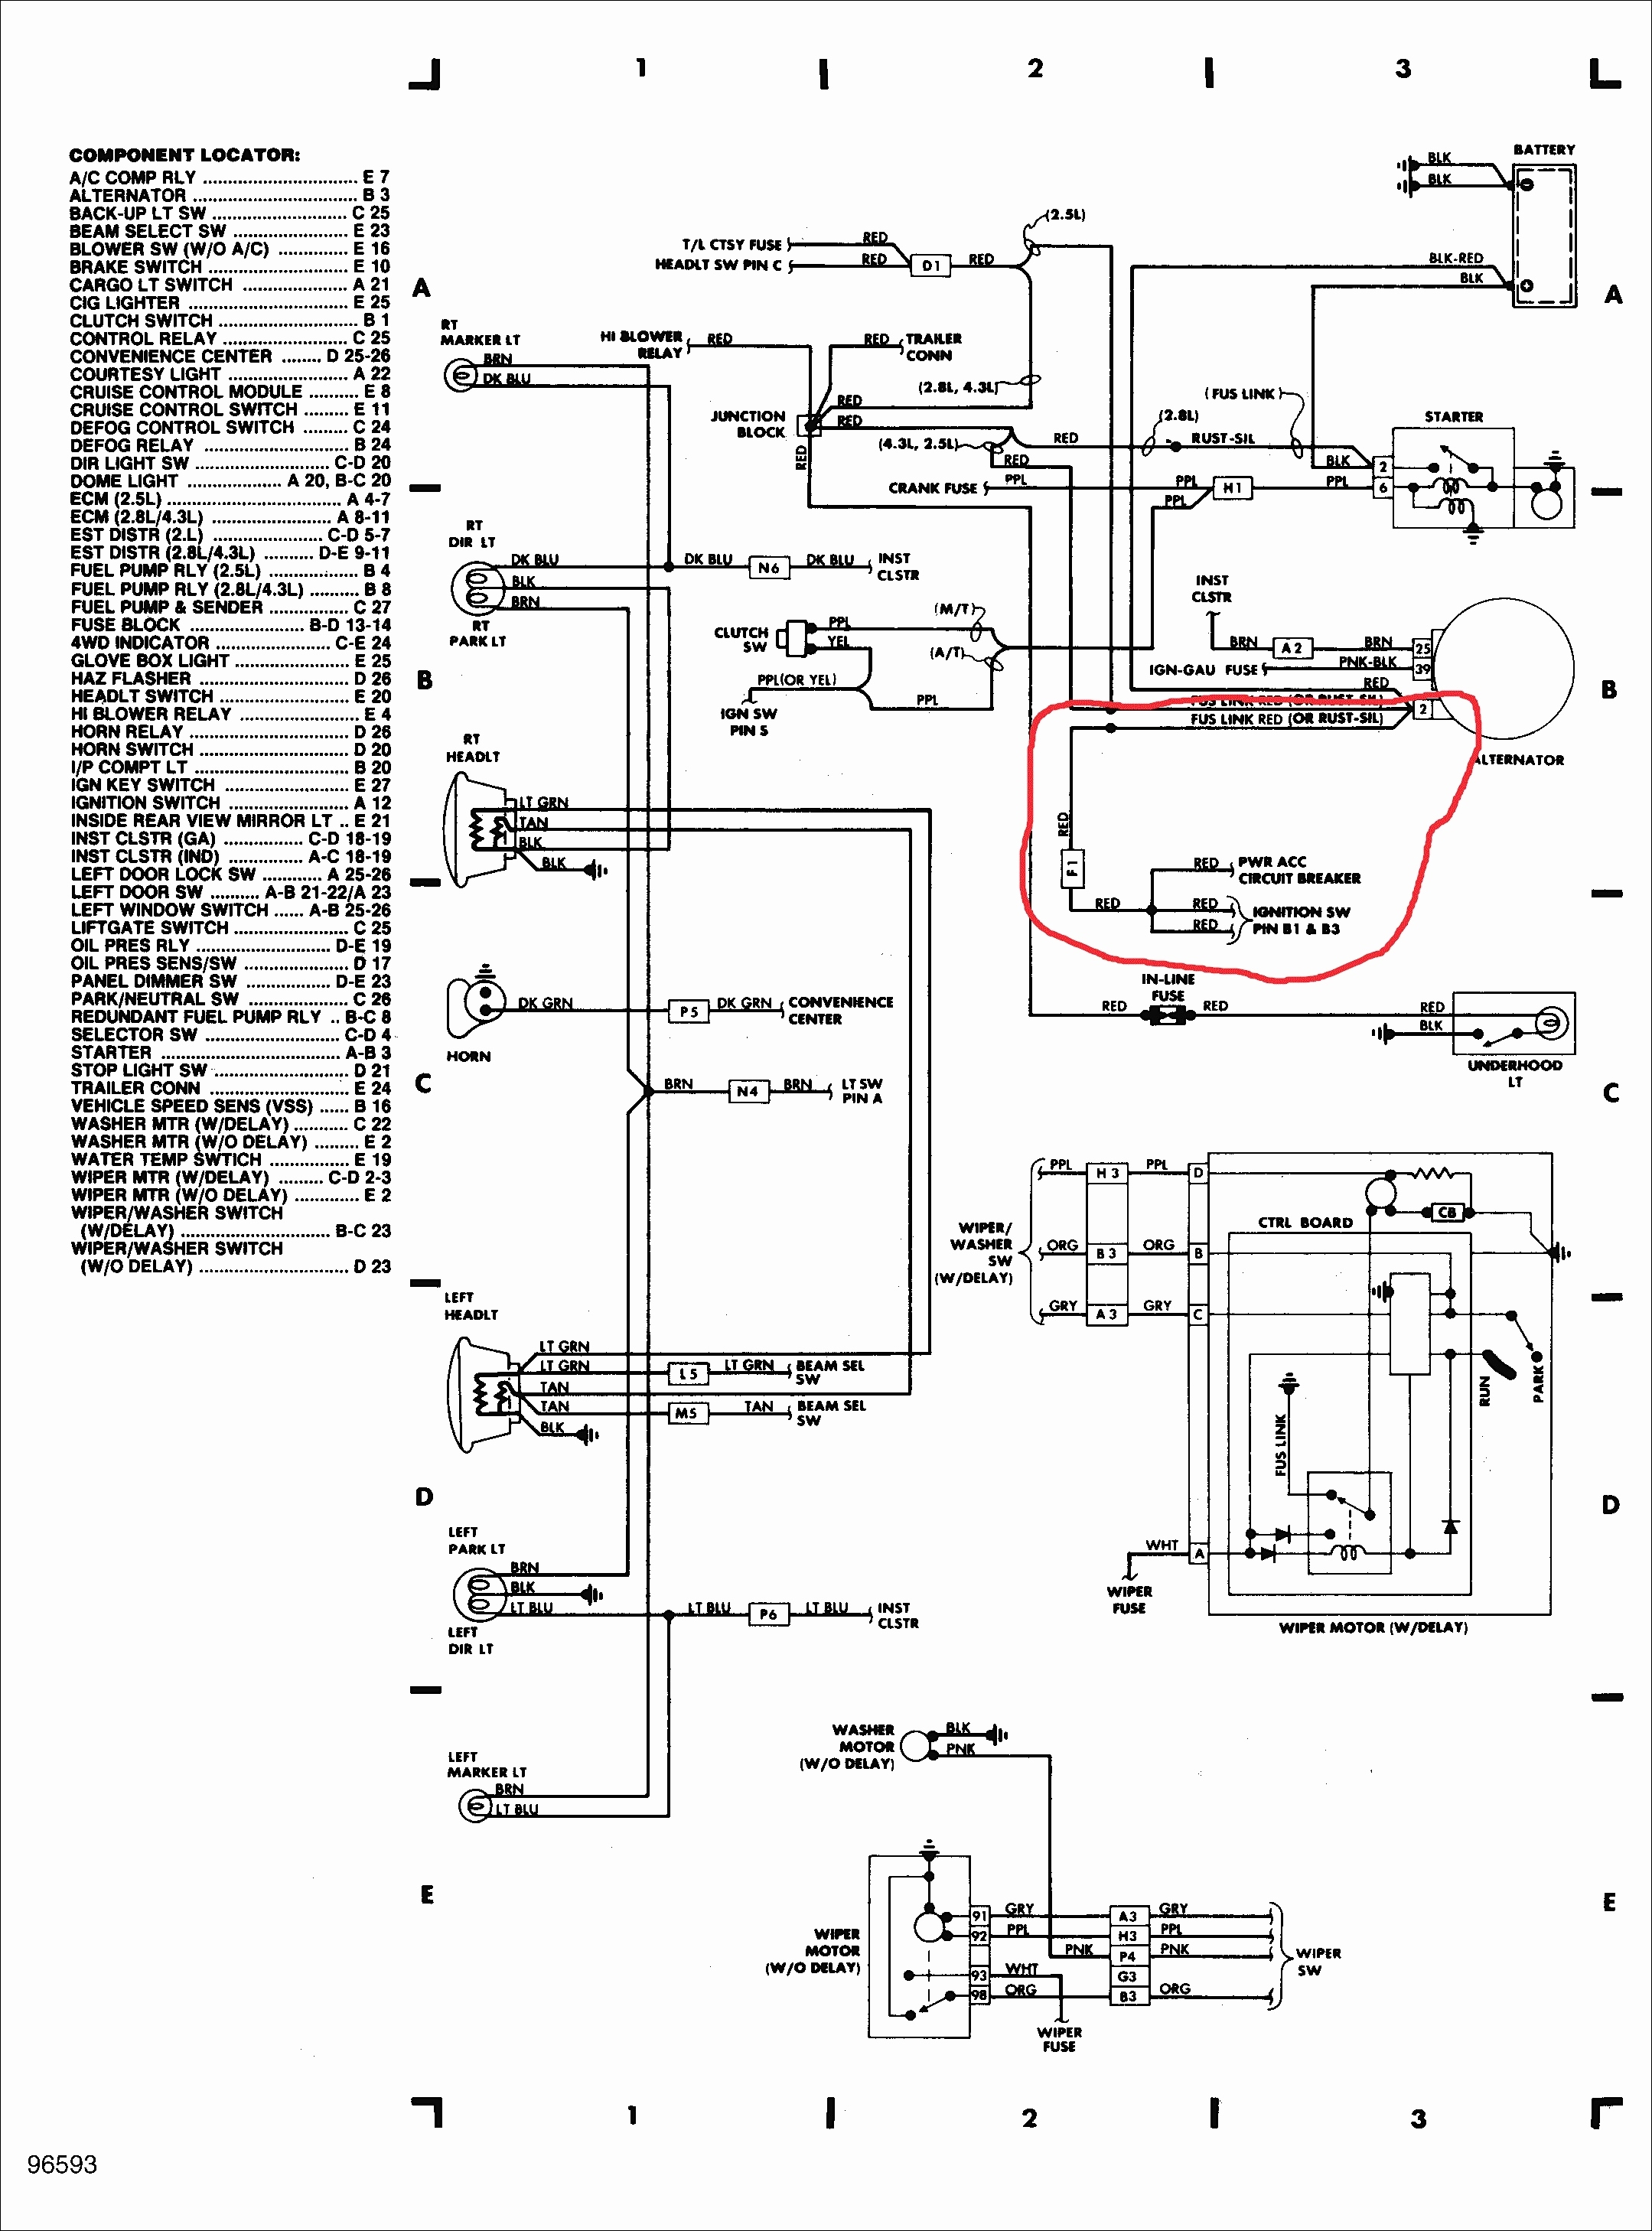 3 position ignition switch wiring diagram | free wiring ... rocketa ignition switch wire diagram three three toggle switch wire diagram